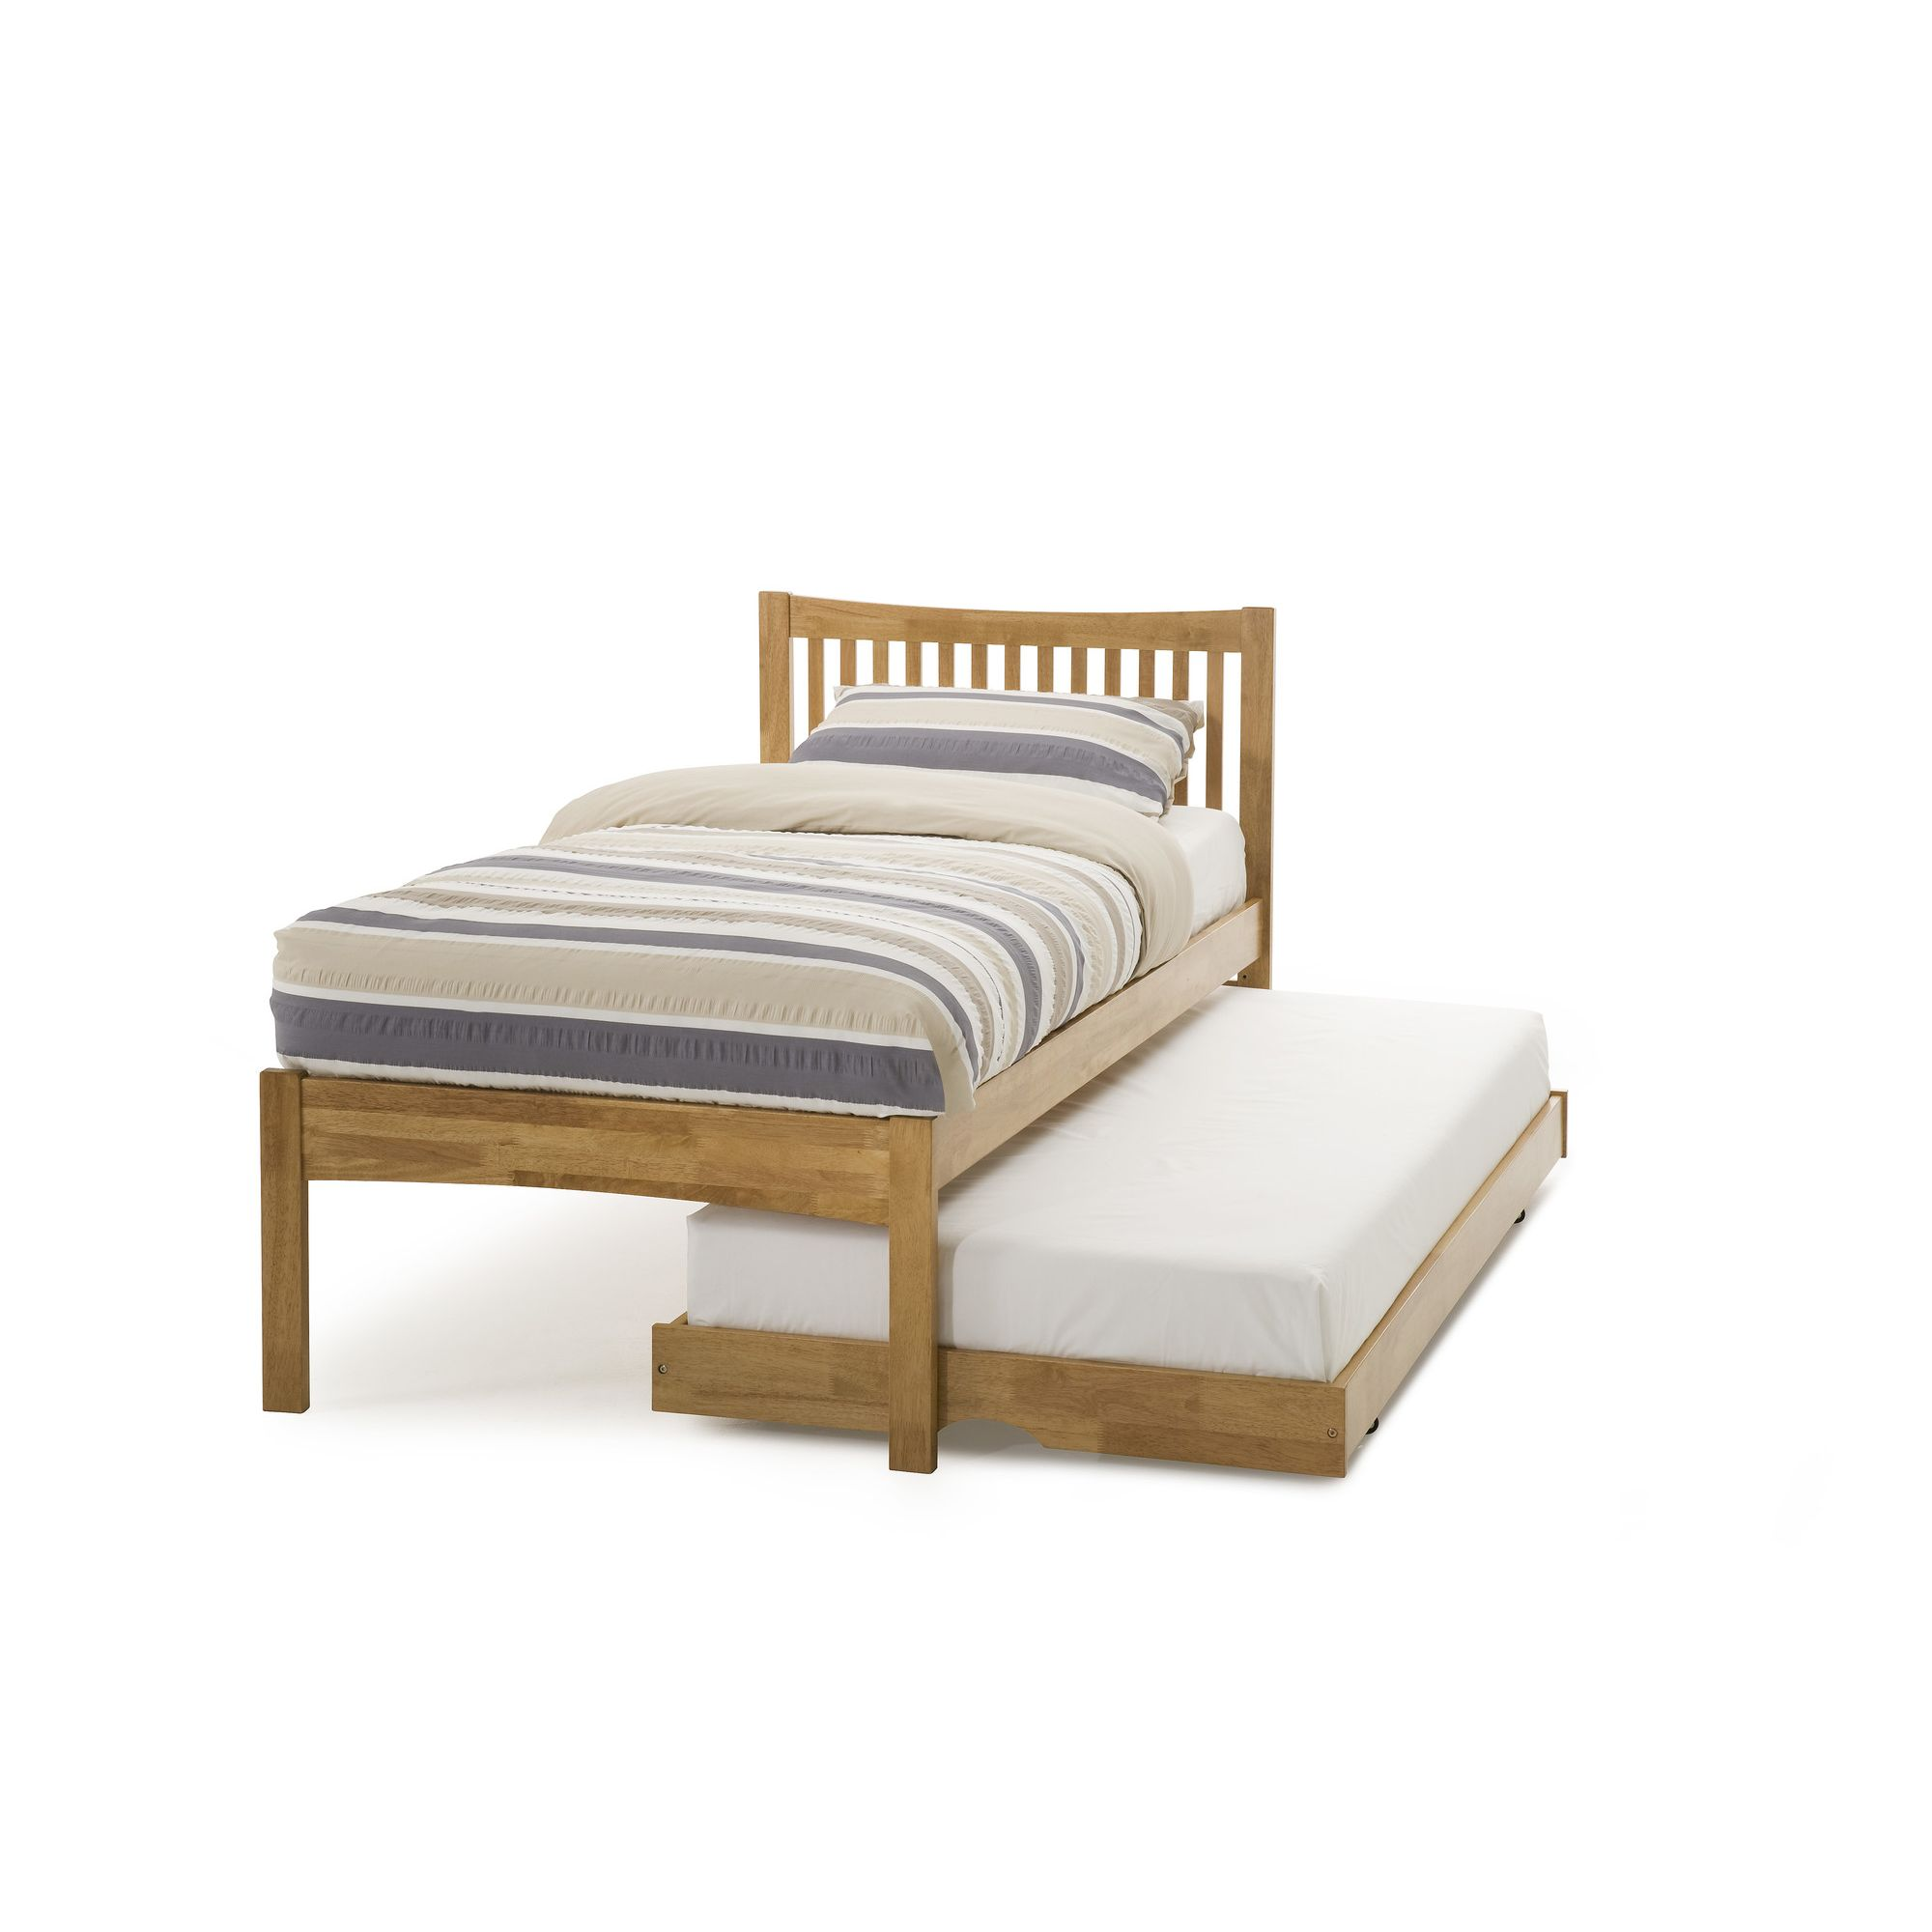 Serene Furnishings Mya Single Guest Bed - Honey Oak at Tesco Direct